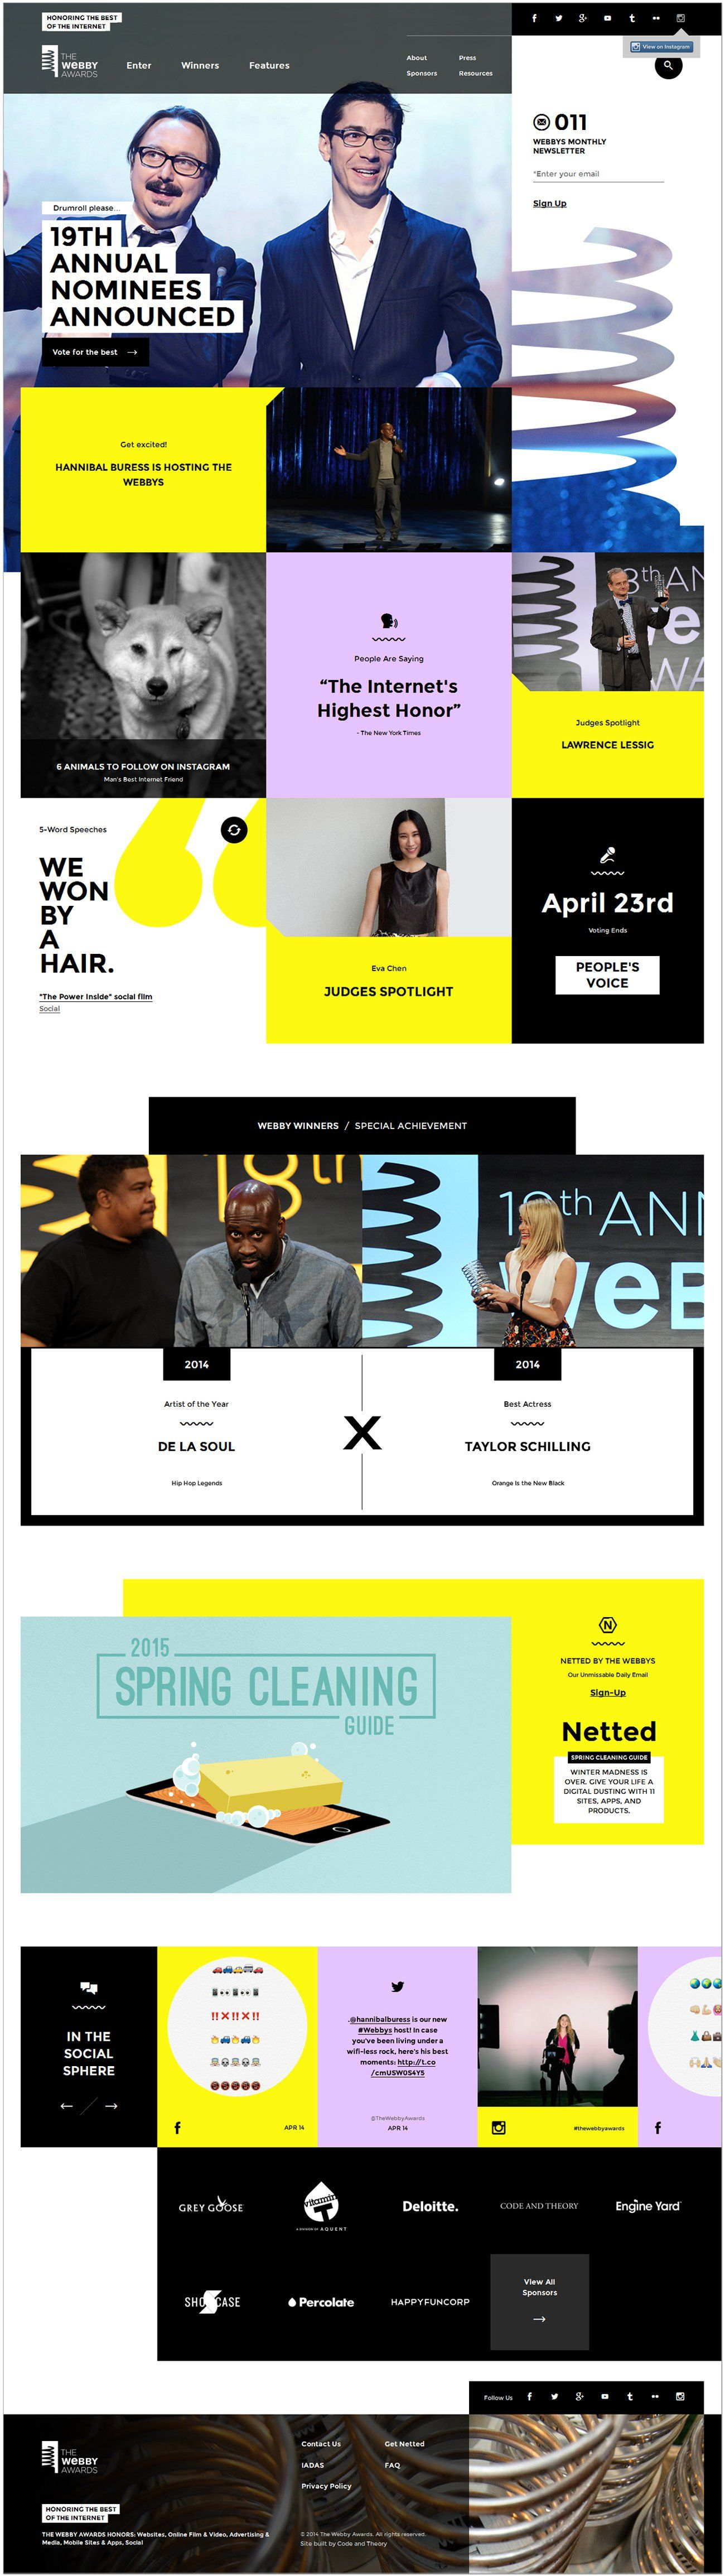 Daily Web Design And Development Inspirations No.543